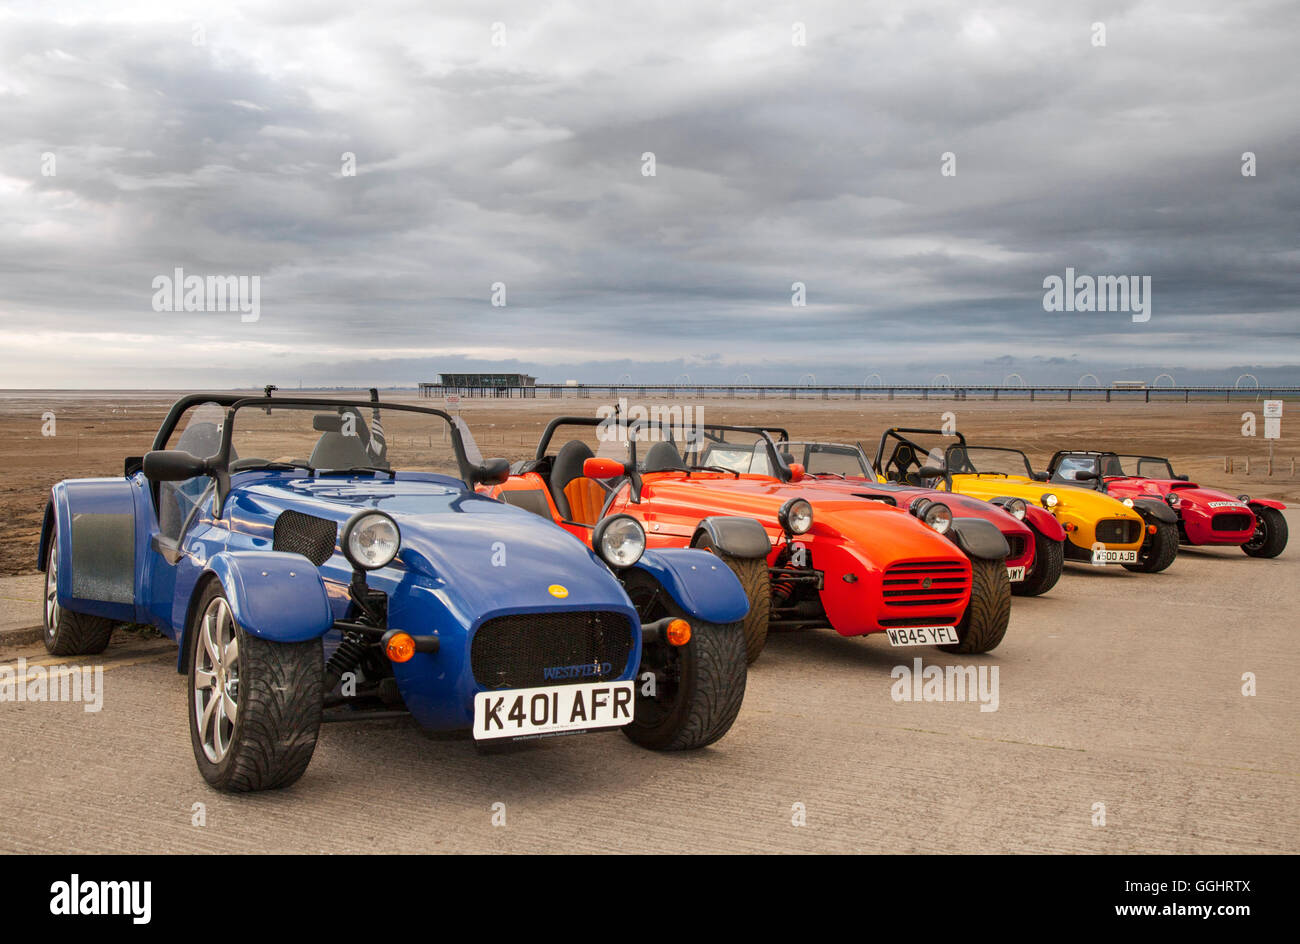 2007 Westfield Se1, several two-seater, open top sportscars, as classic car club meet on Southport beach on a slipway - Stock Image